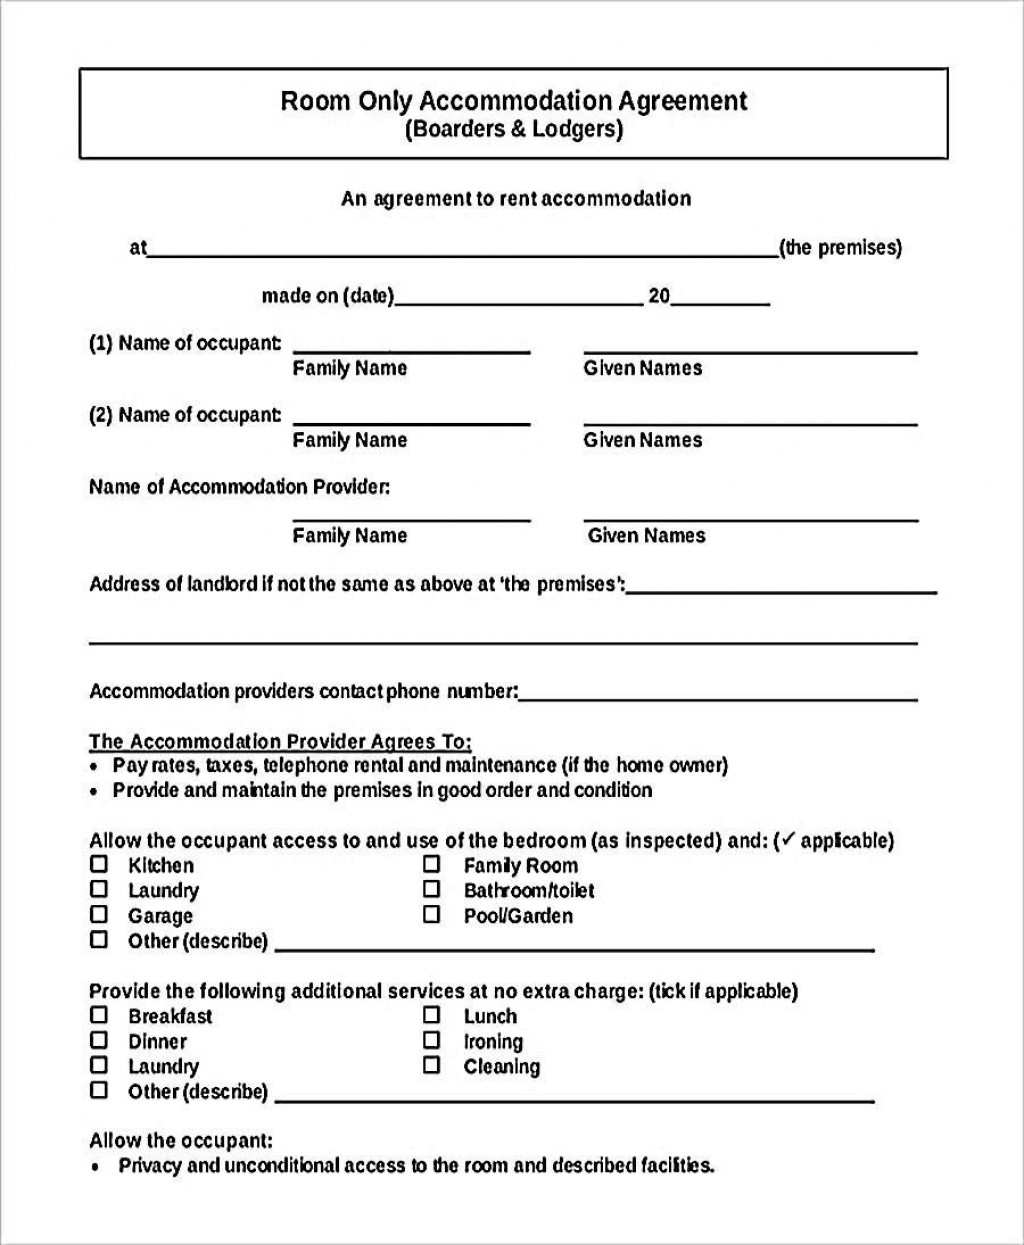 001 Archaicawful Landlord Contract Template Free Inspiration  Rental Simple Flat Resident Tenancy AgreementLarge